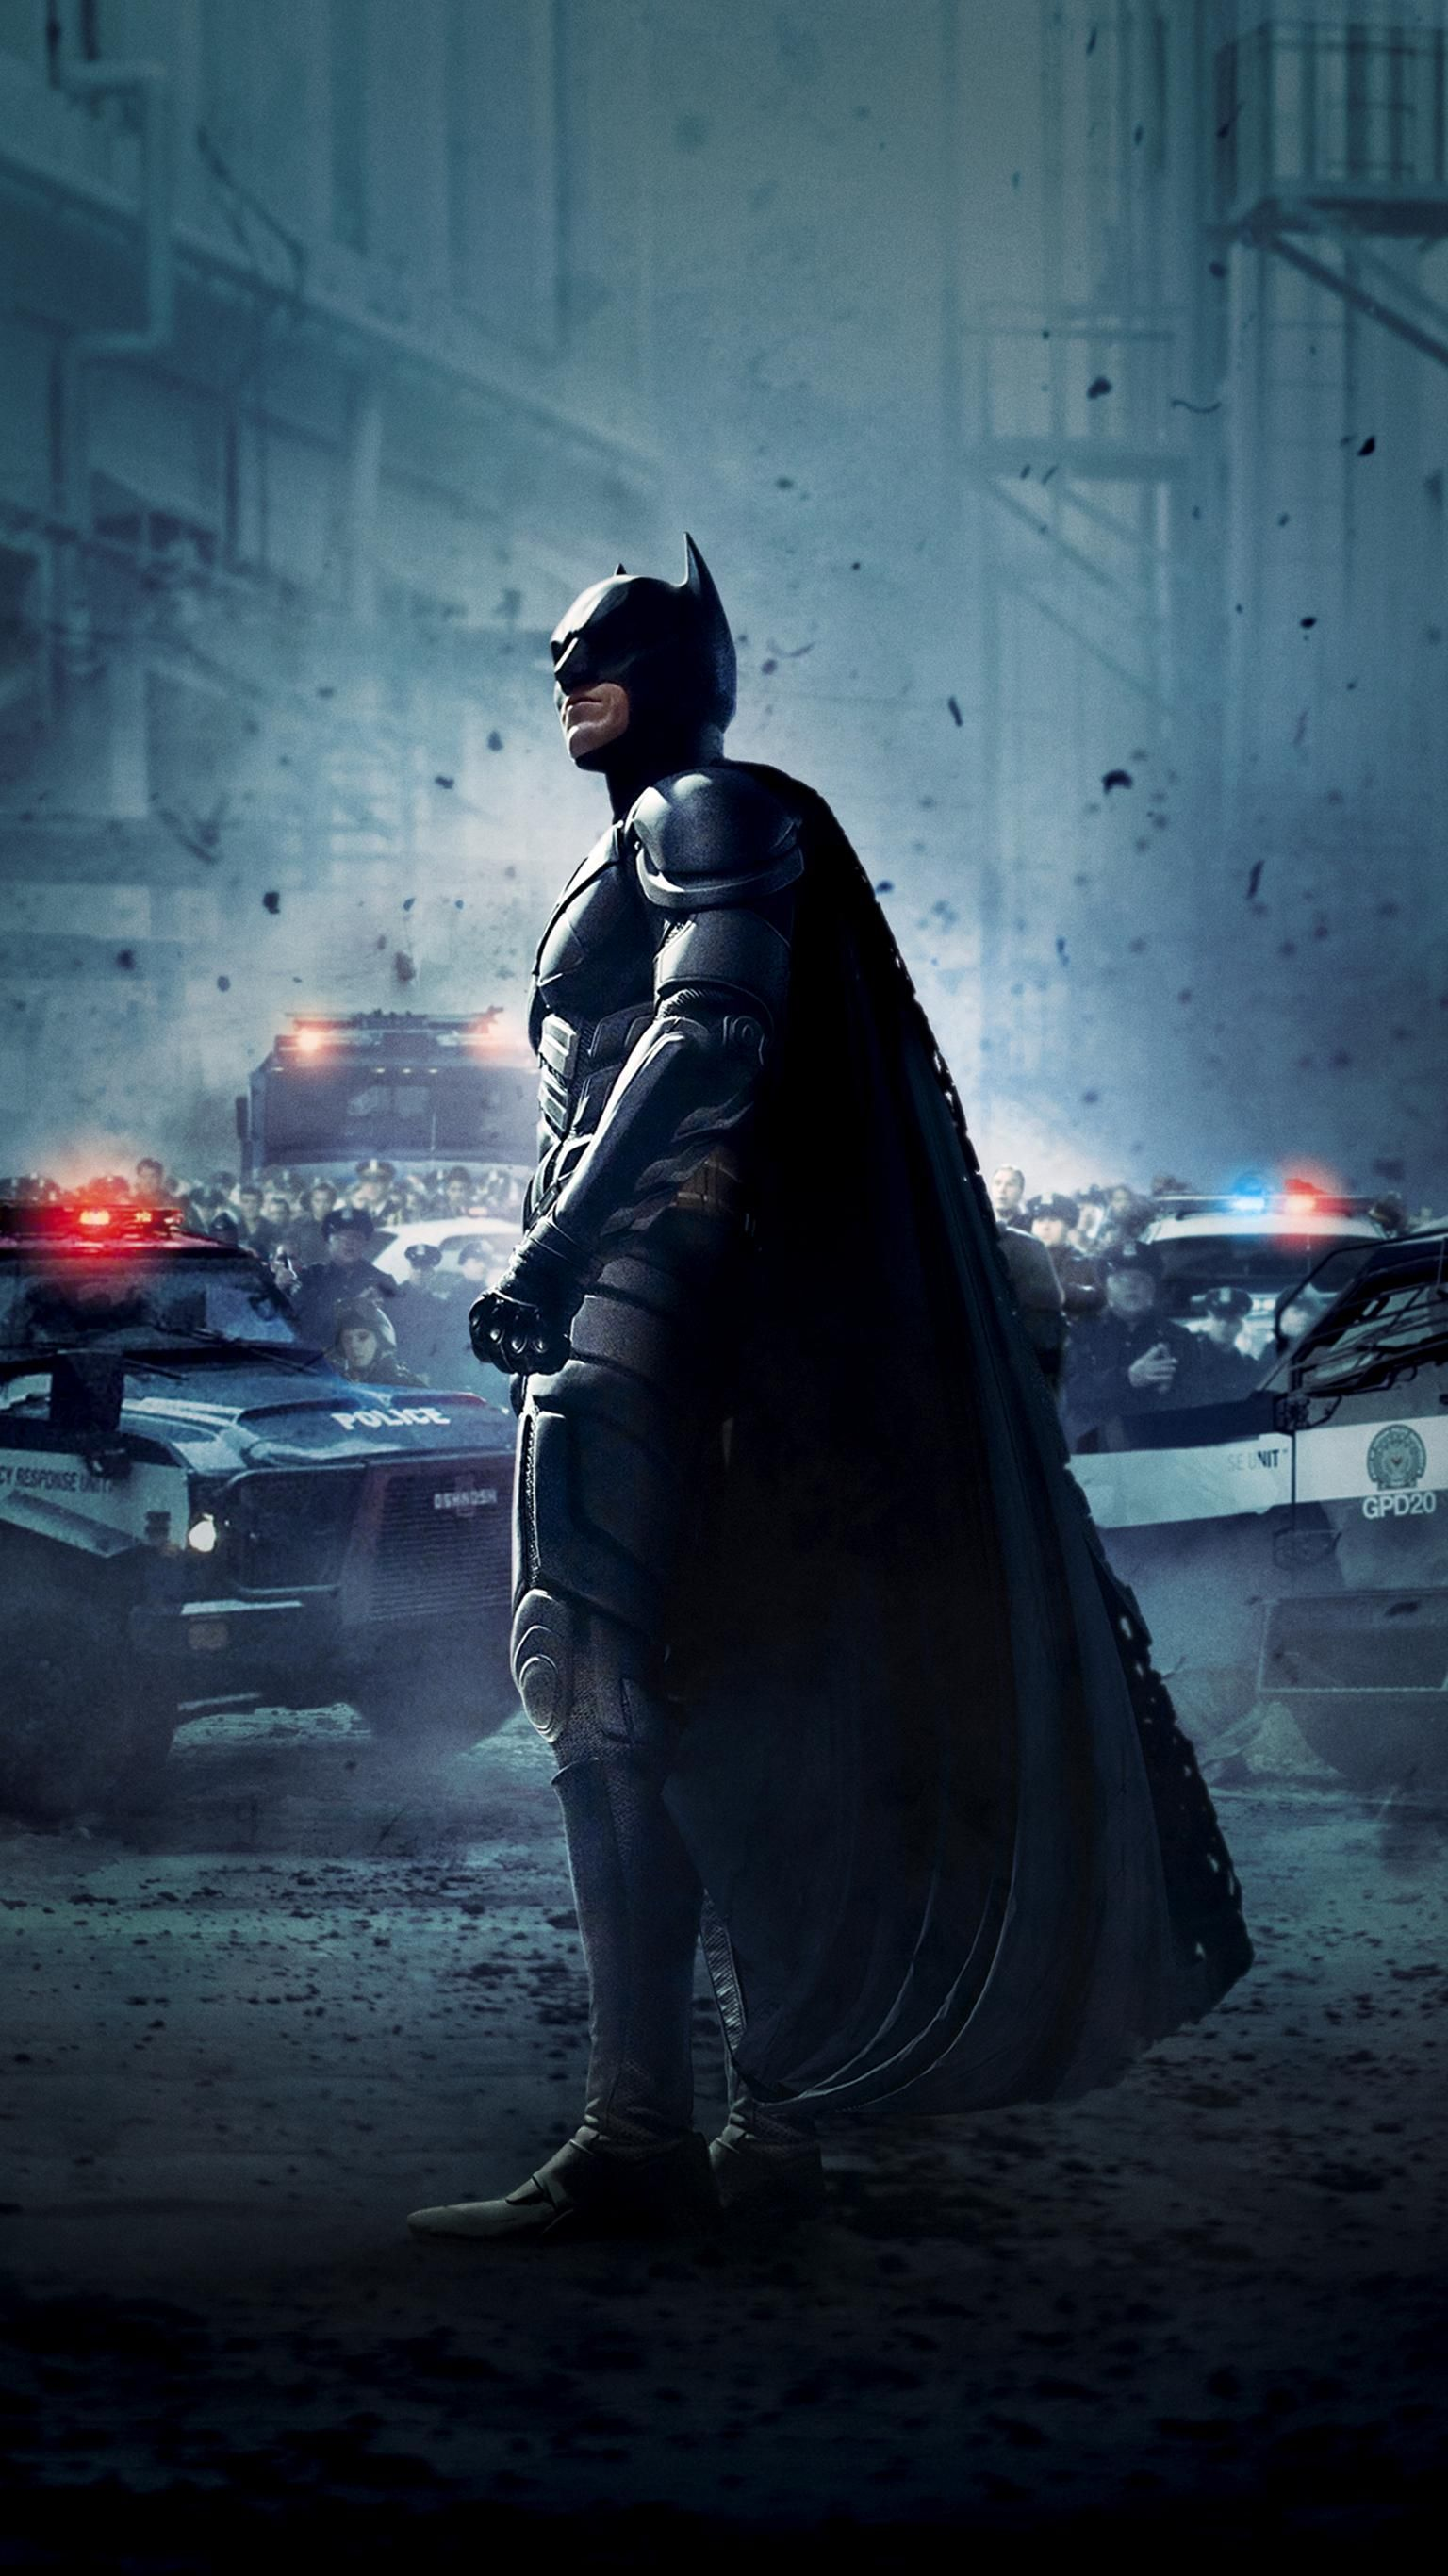 The Dark Knight Rises (2012) Phone Wallpaper (With images